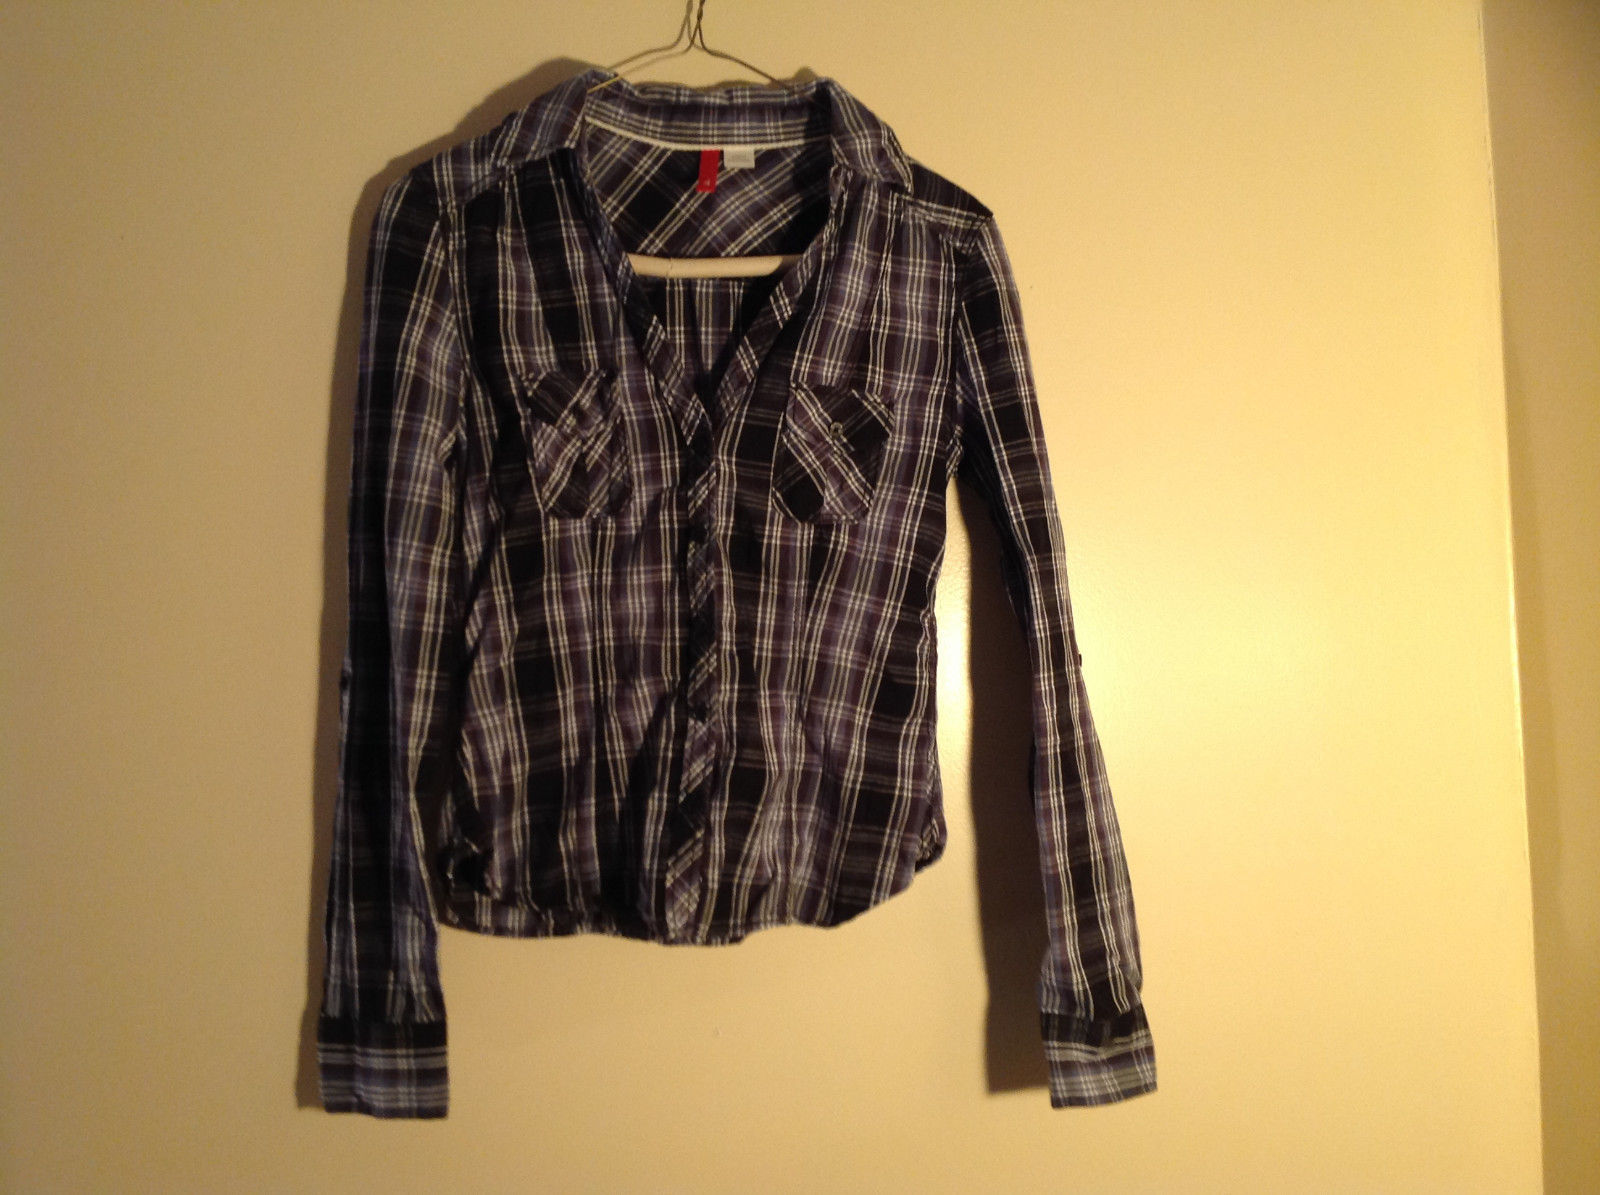 Divided Juniors Fitted Blue Black White Plaid Button Up Long Sleeve Shirt Size 4